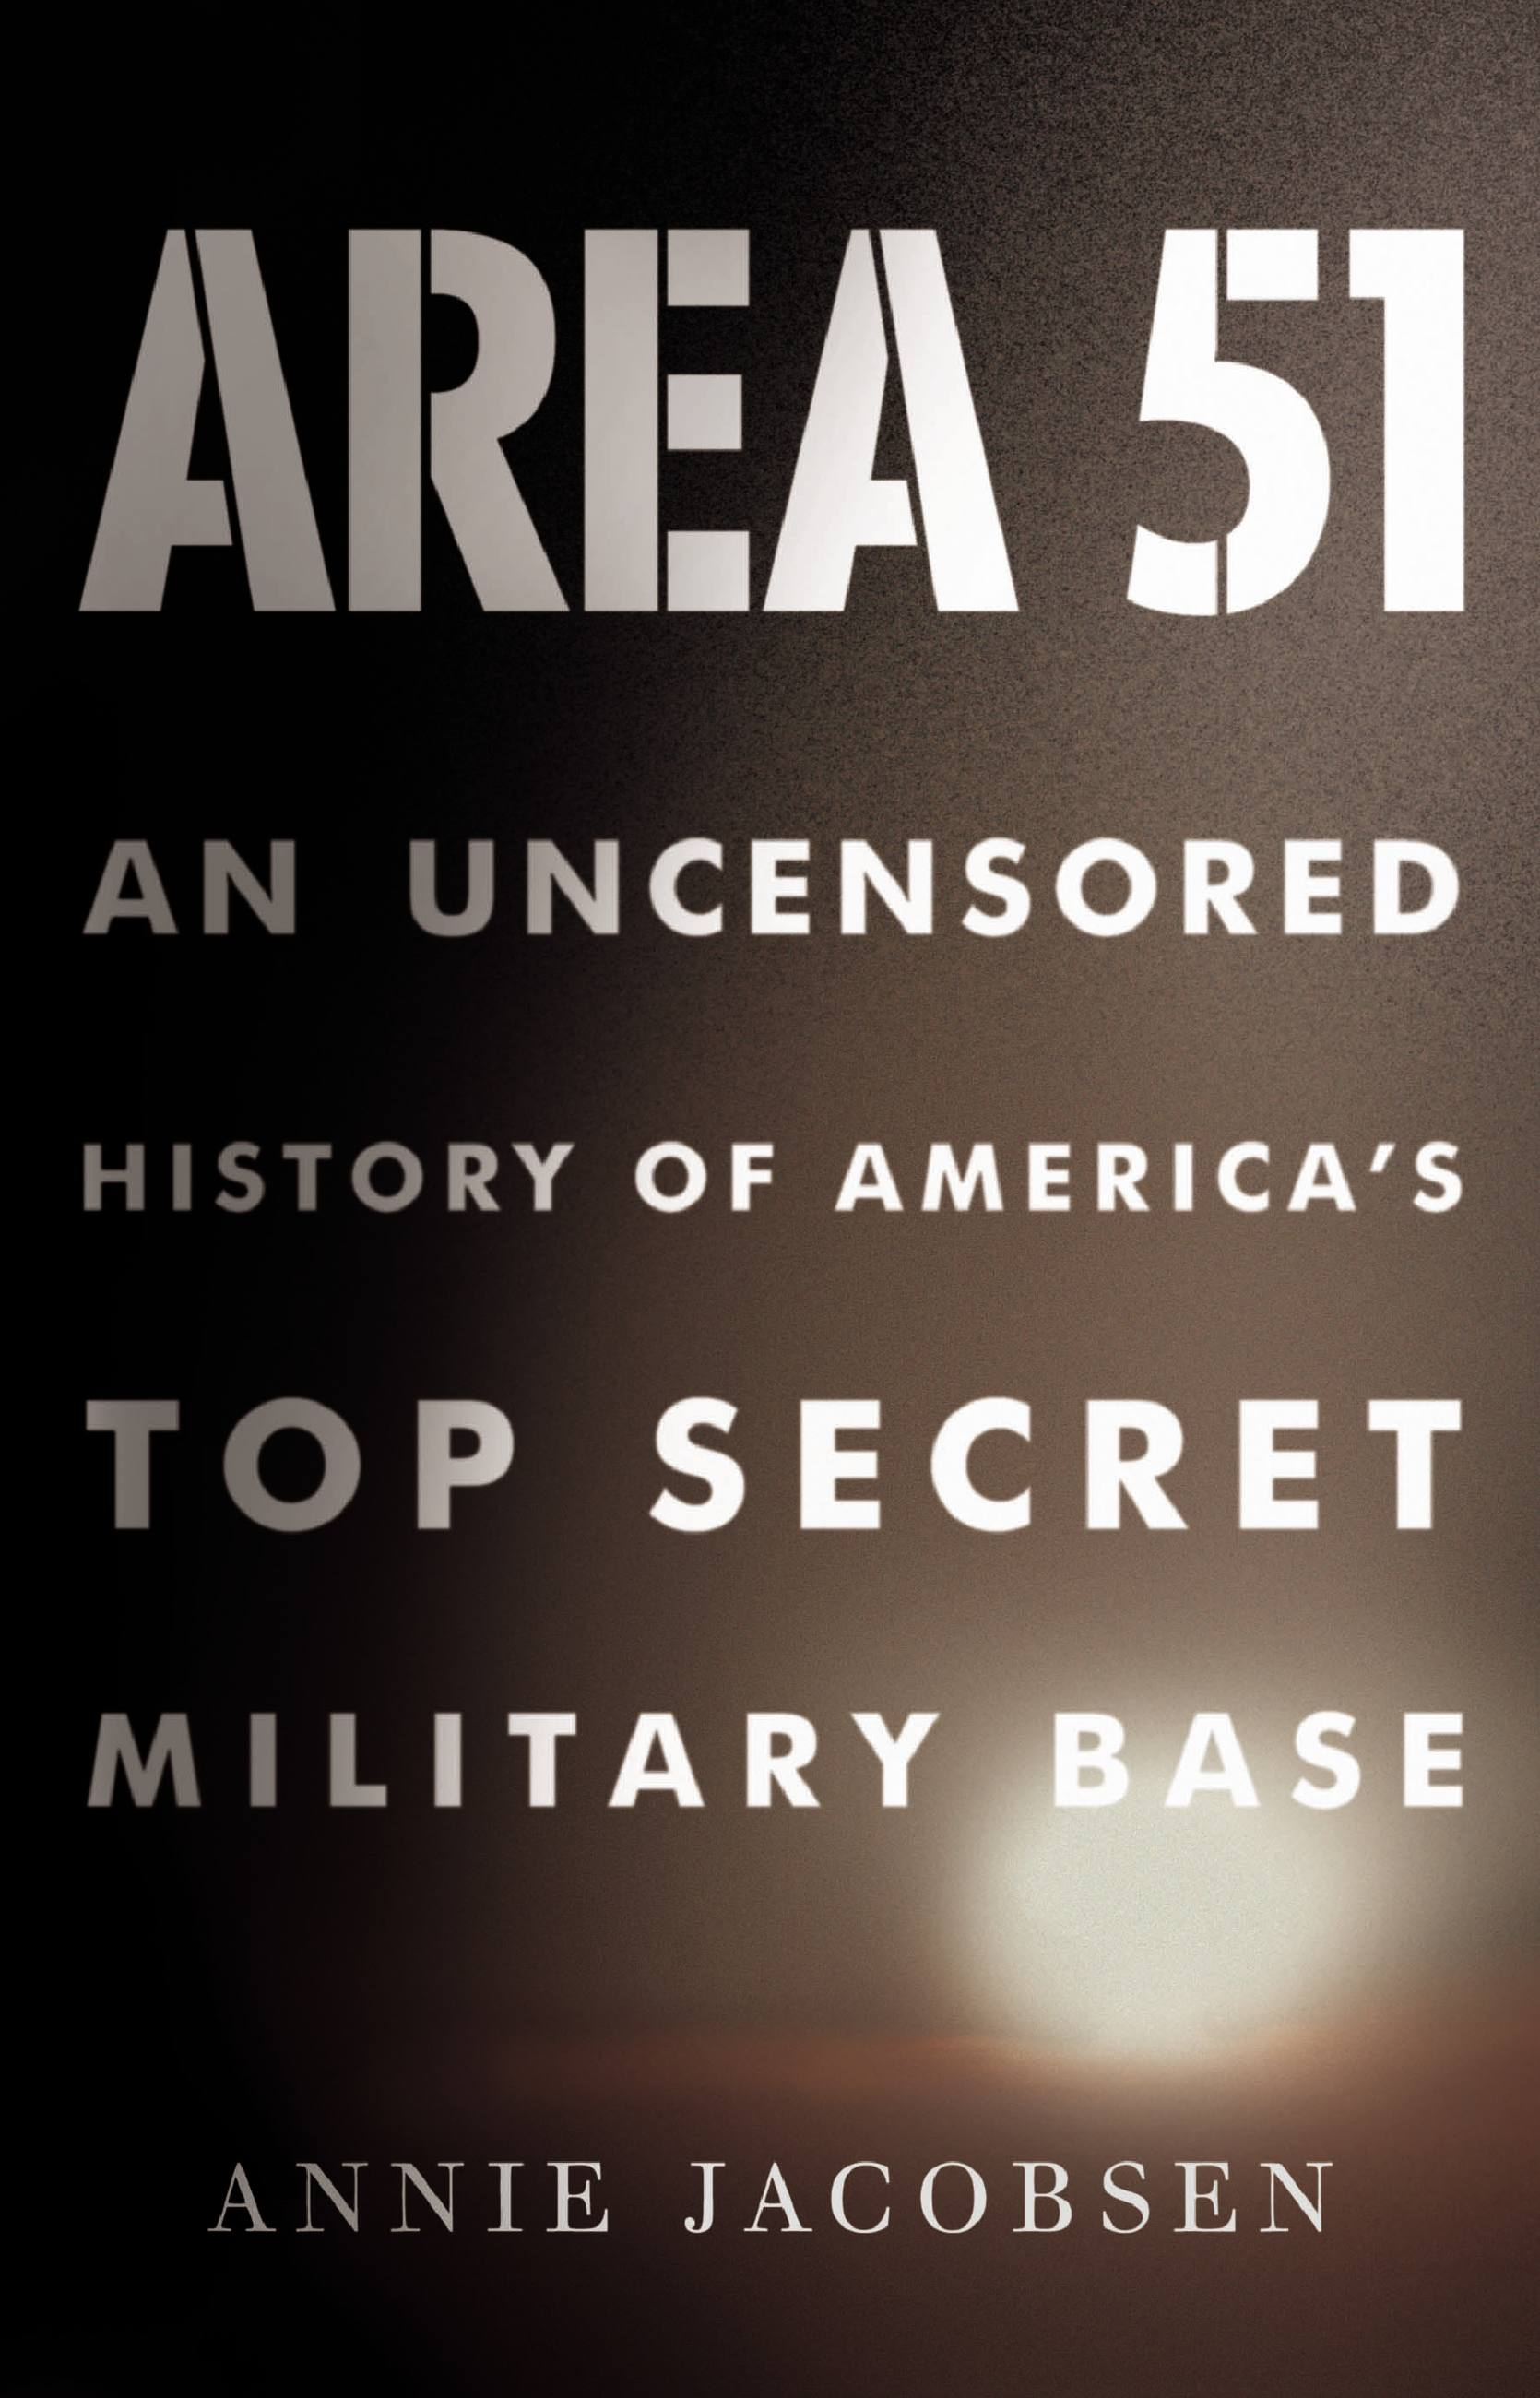 Area 51 An Uncensored History of America's Top Secret Military Base